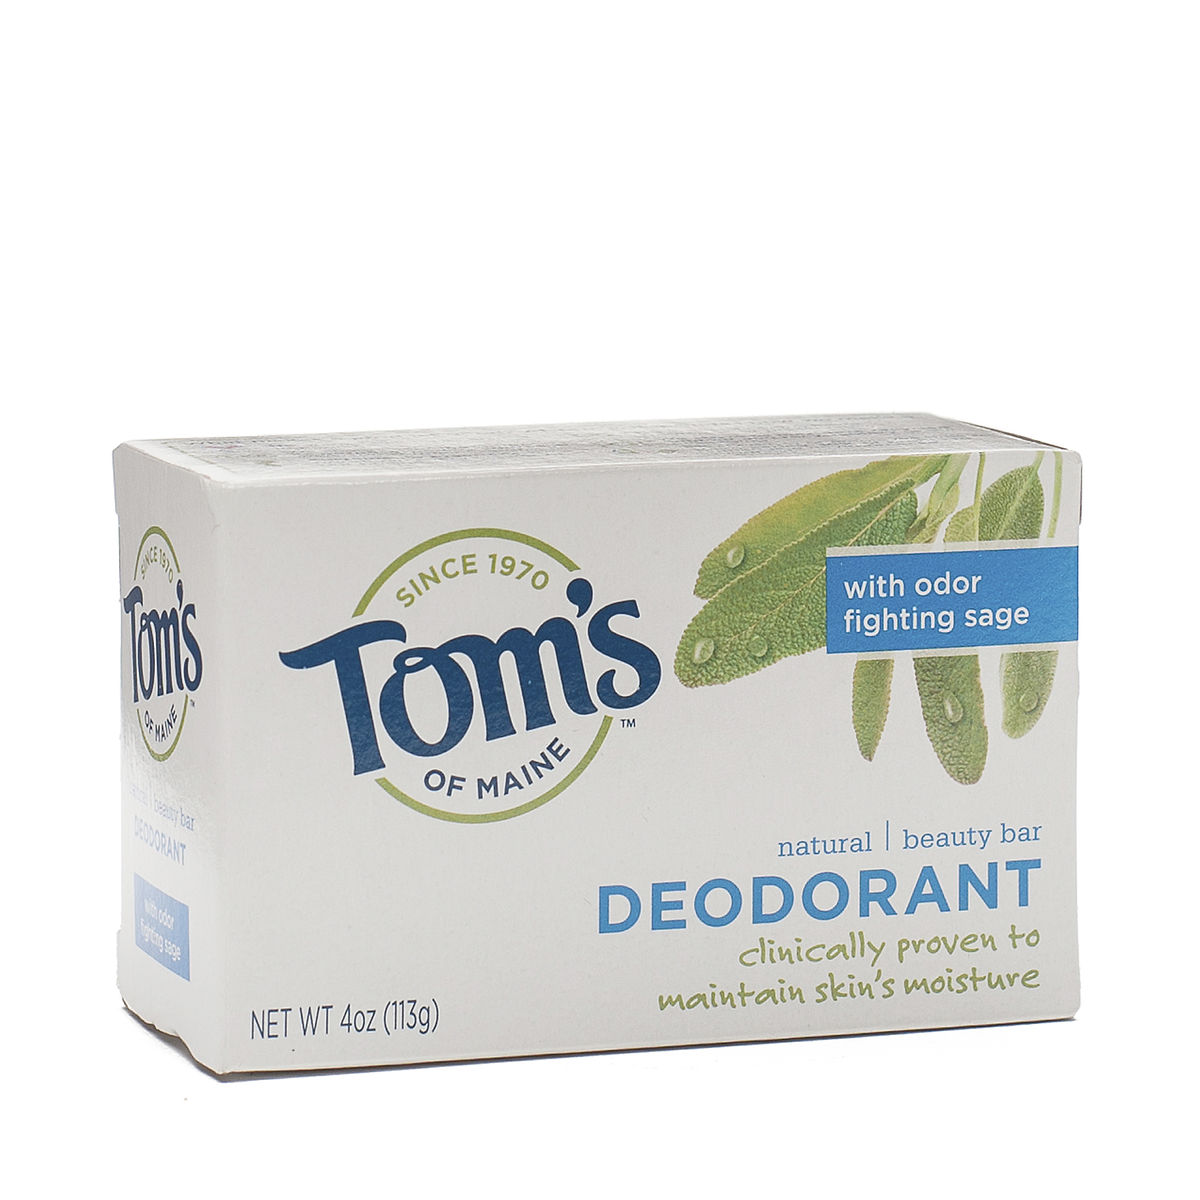 4 Oz Deodorant Natural Beauty Bar By Toms Of Maine